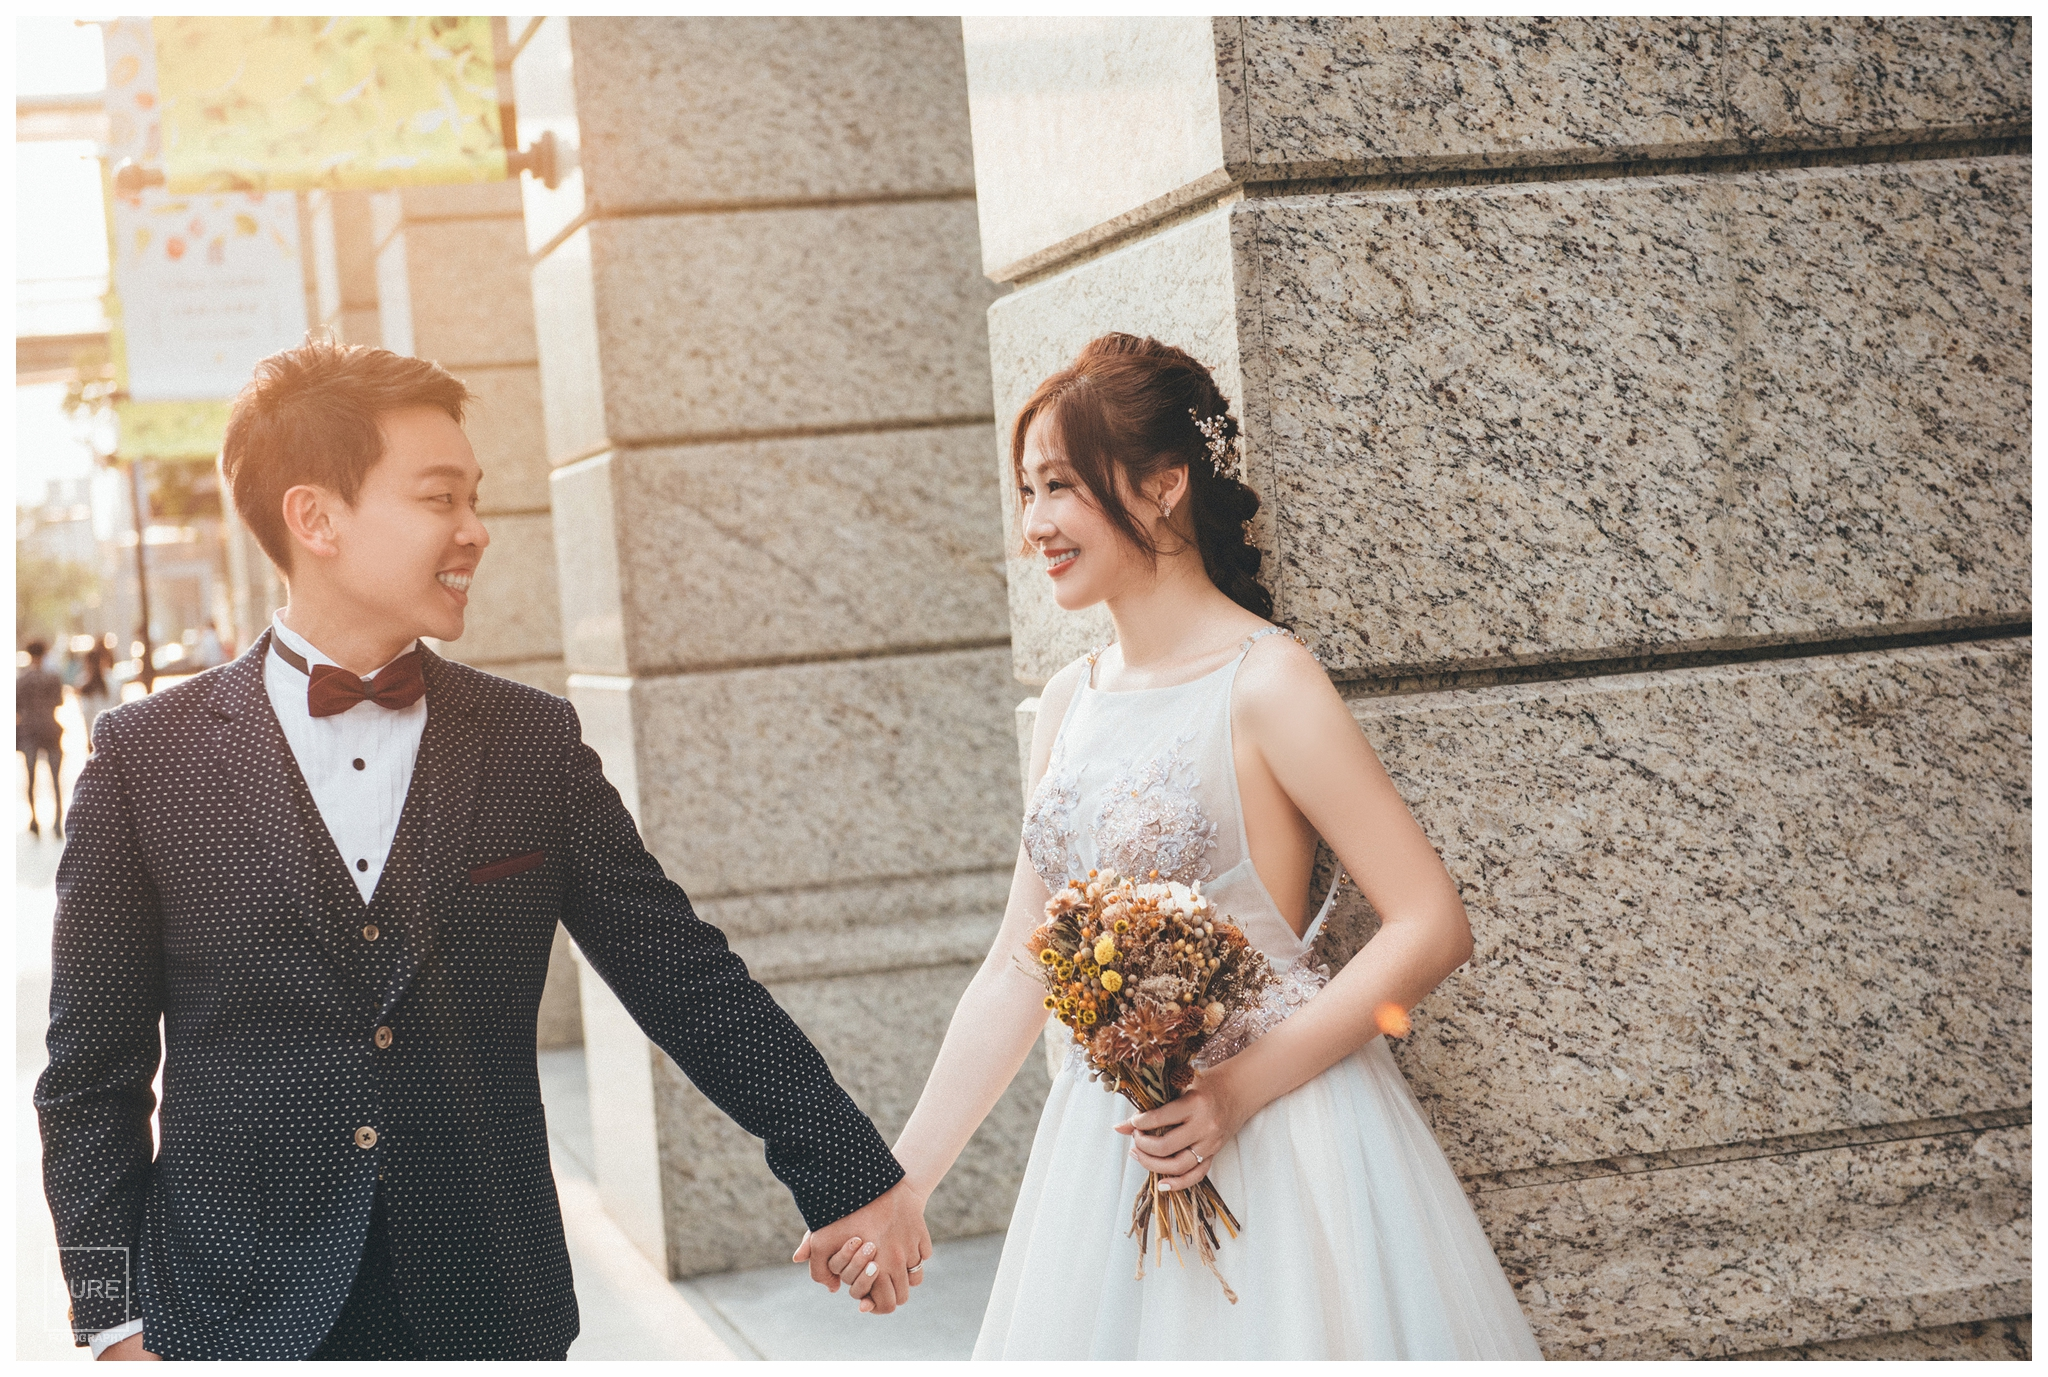 PUREFOTO_台灣自助婚紗攝影Prewedding_Bella vita逆光婚紗